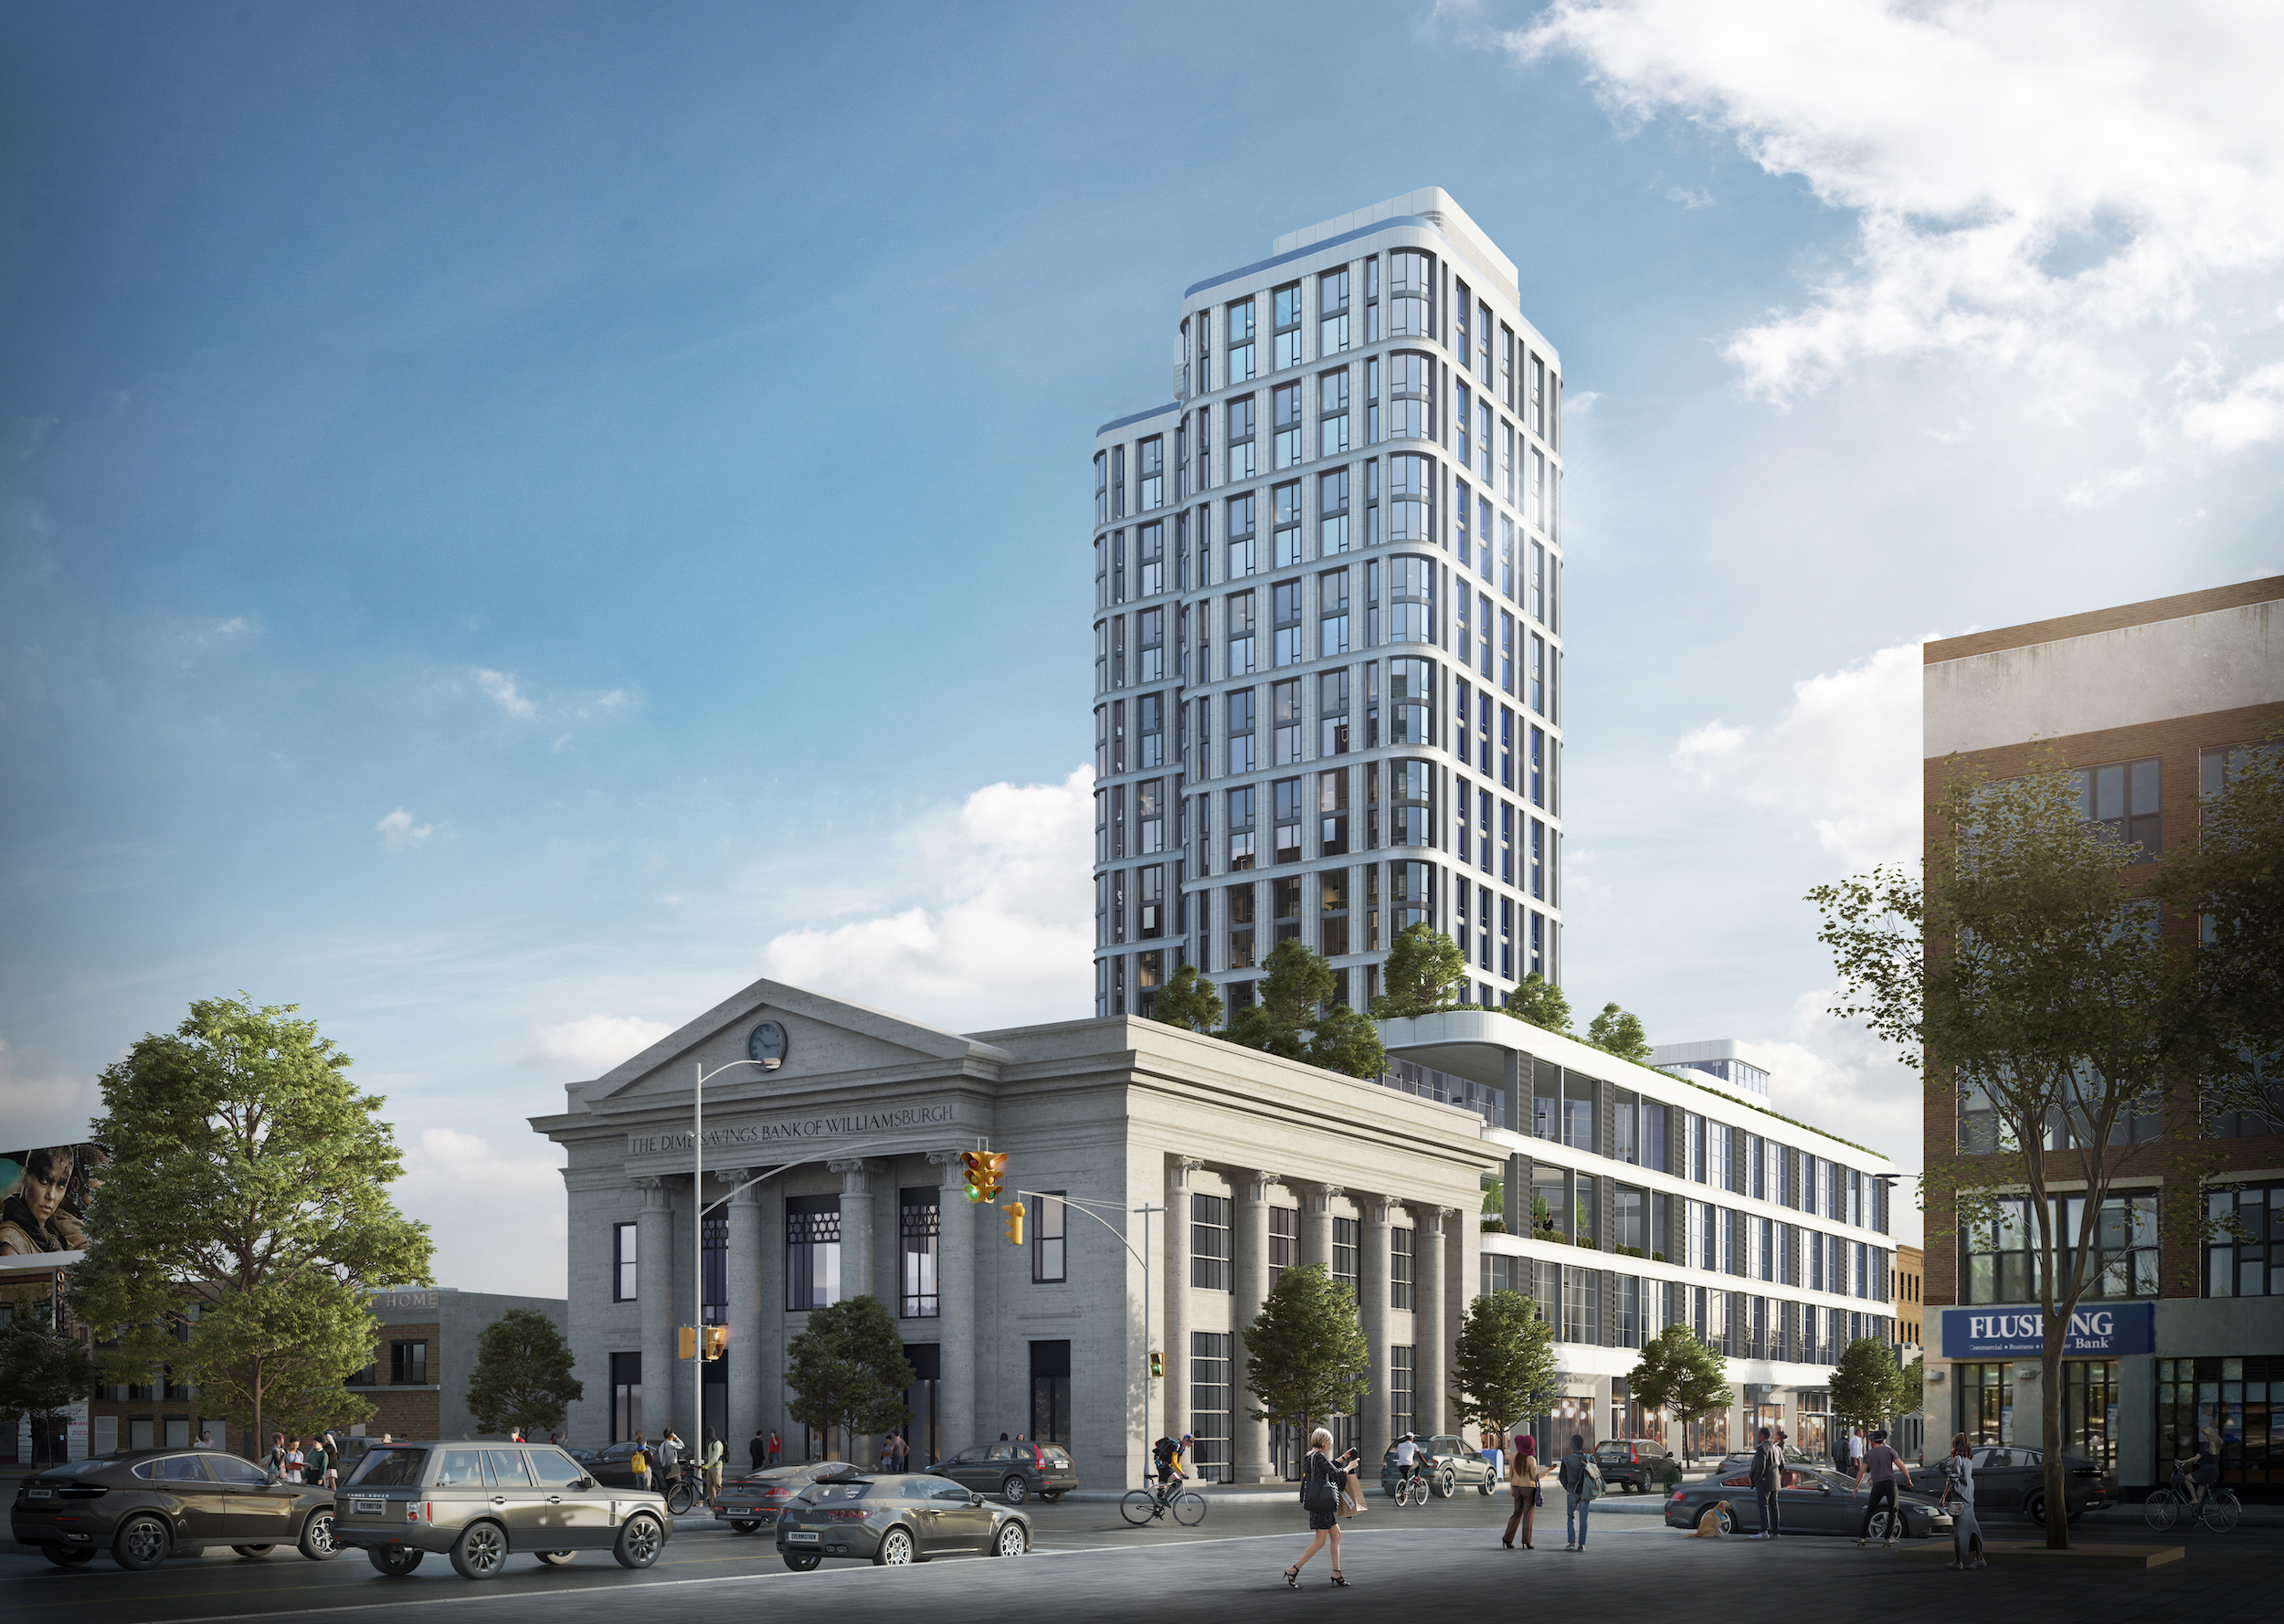 Dime Savings Bank, The Dime, Williamsburg, Housing lotteries, affordable housing, charney construction and development, fogarty finger architects, tavros development partners